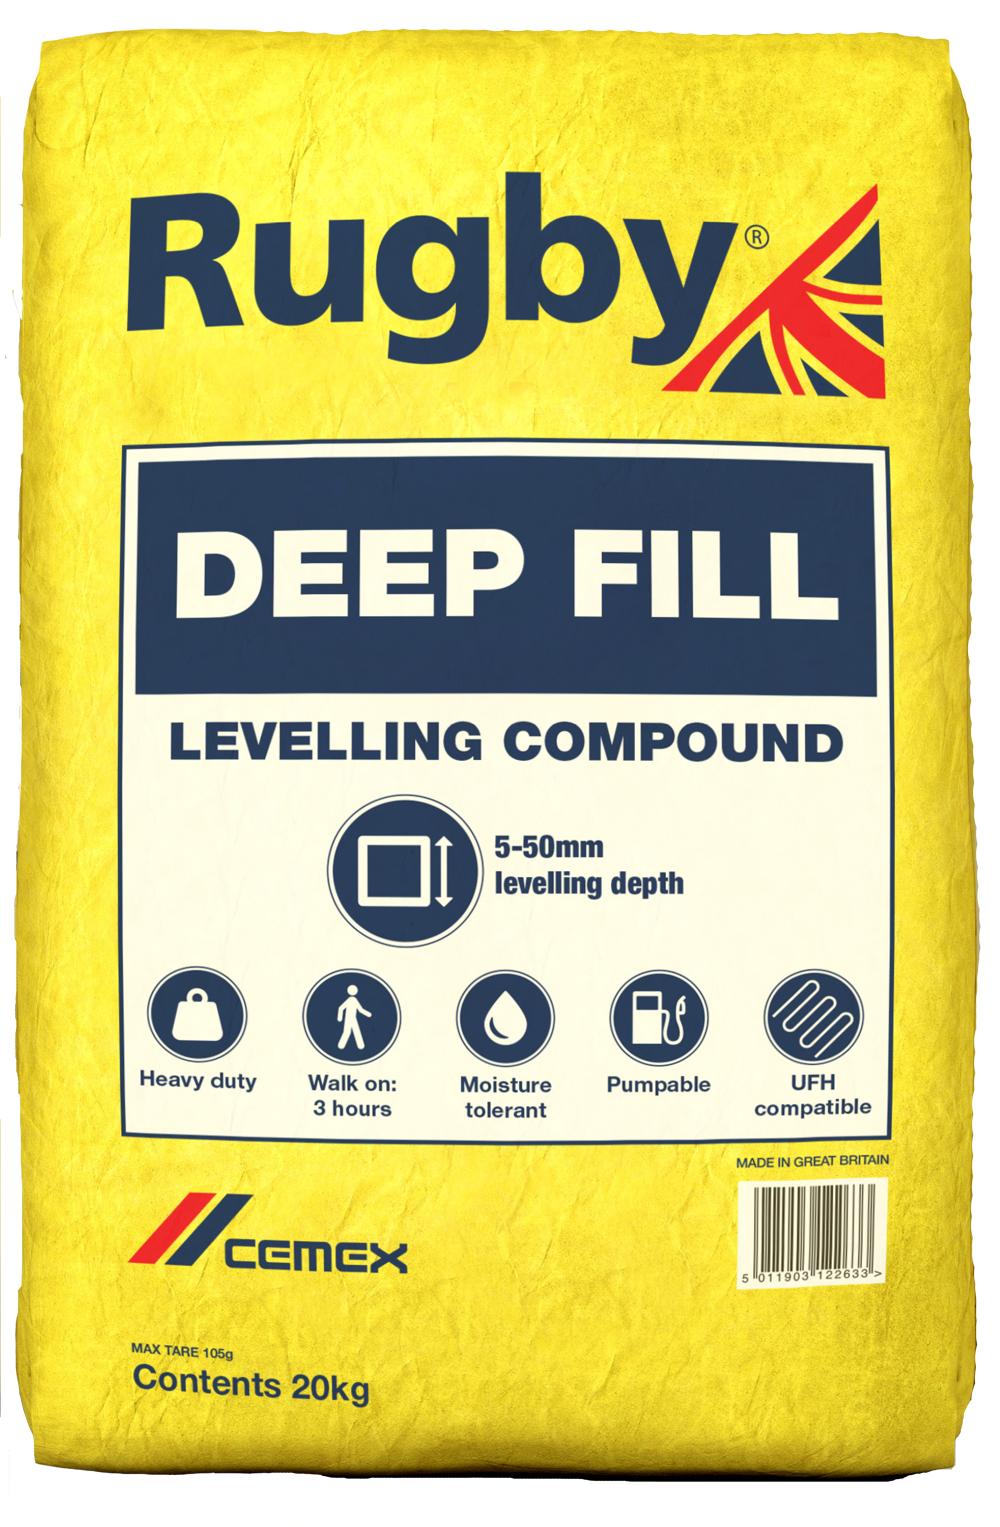 CEMEX Rugby Deep Fill Levelling Compound